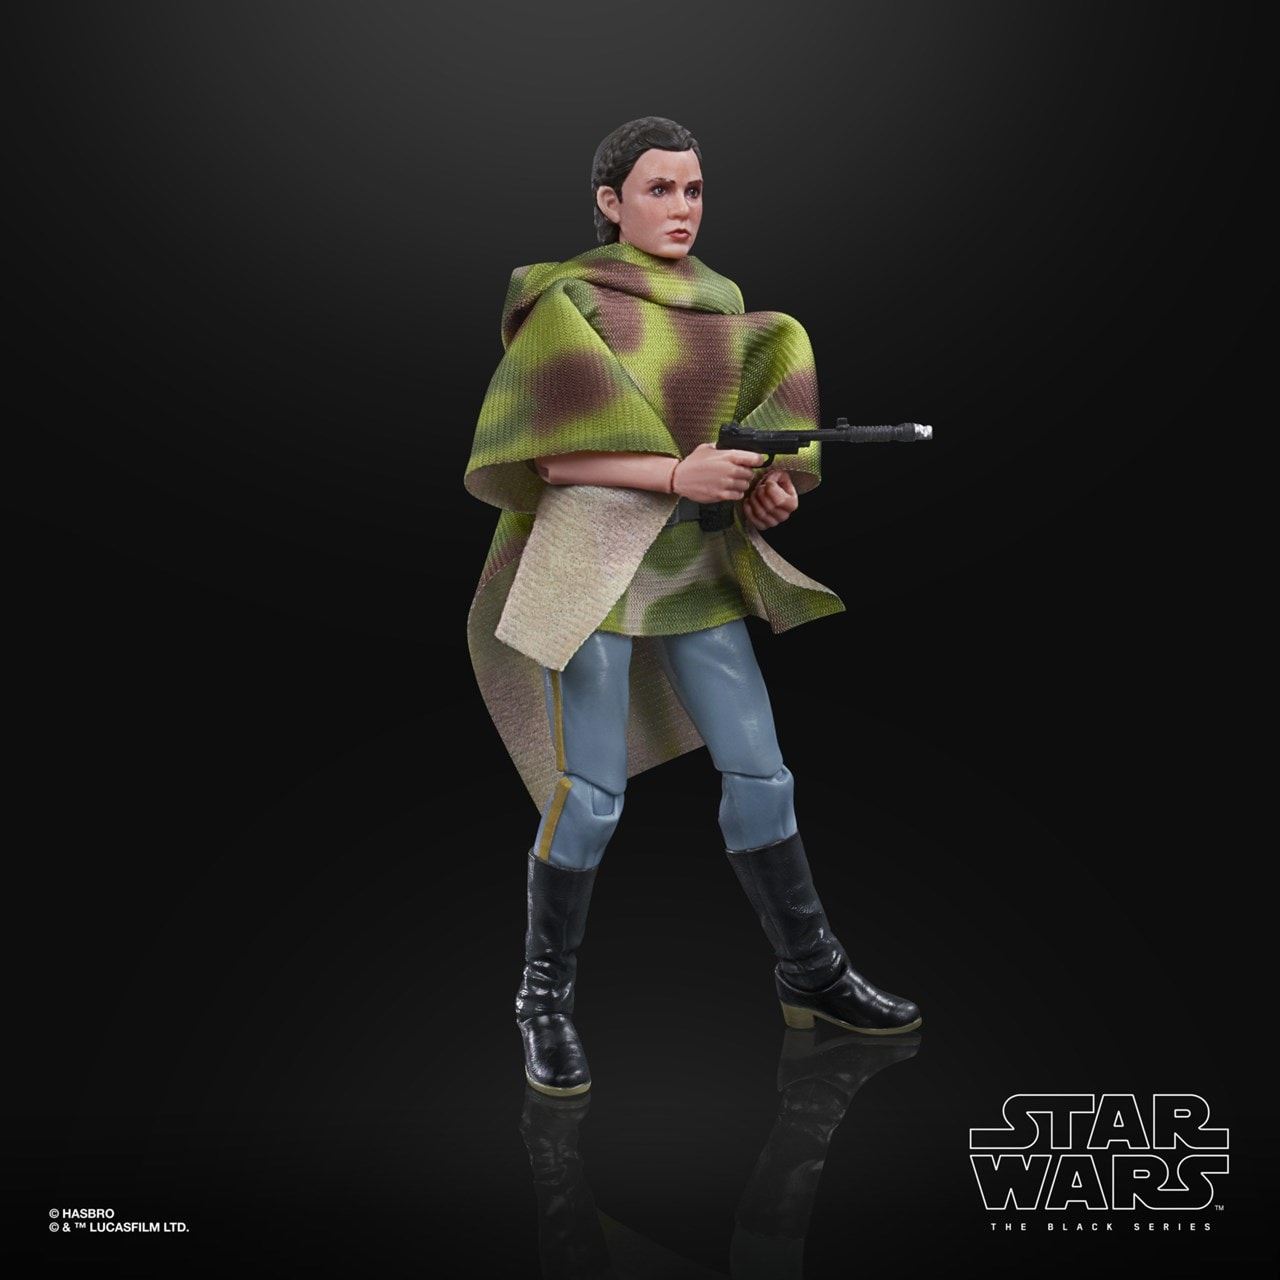 Leia: Episode 6: The Black Series: Star Wars Action Figure - 2